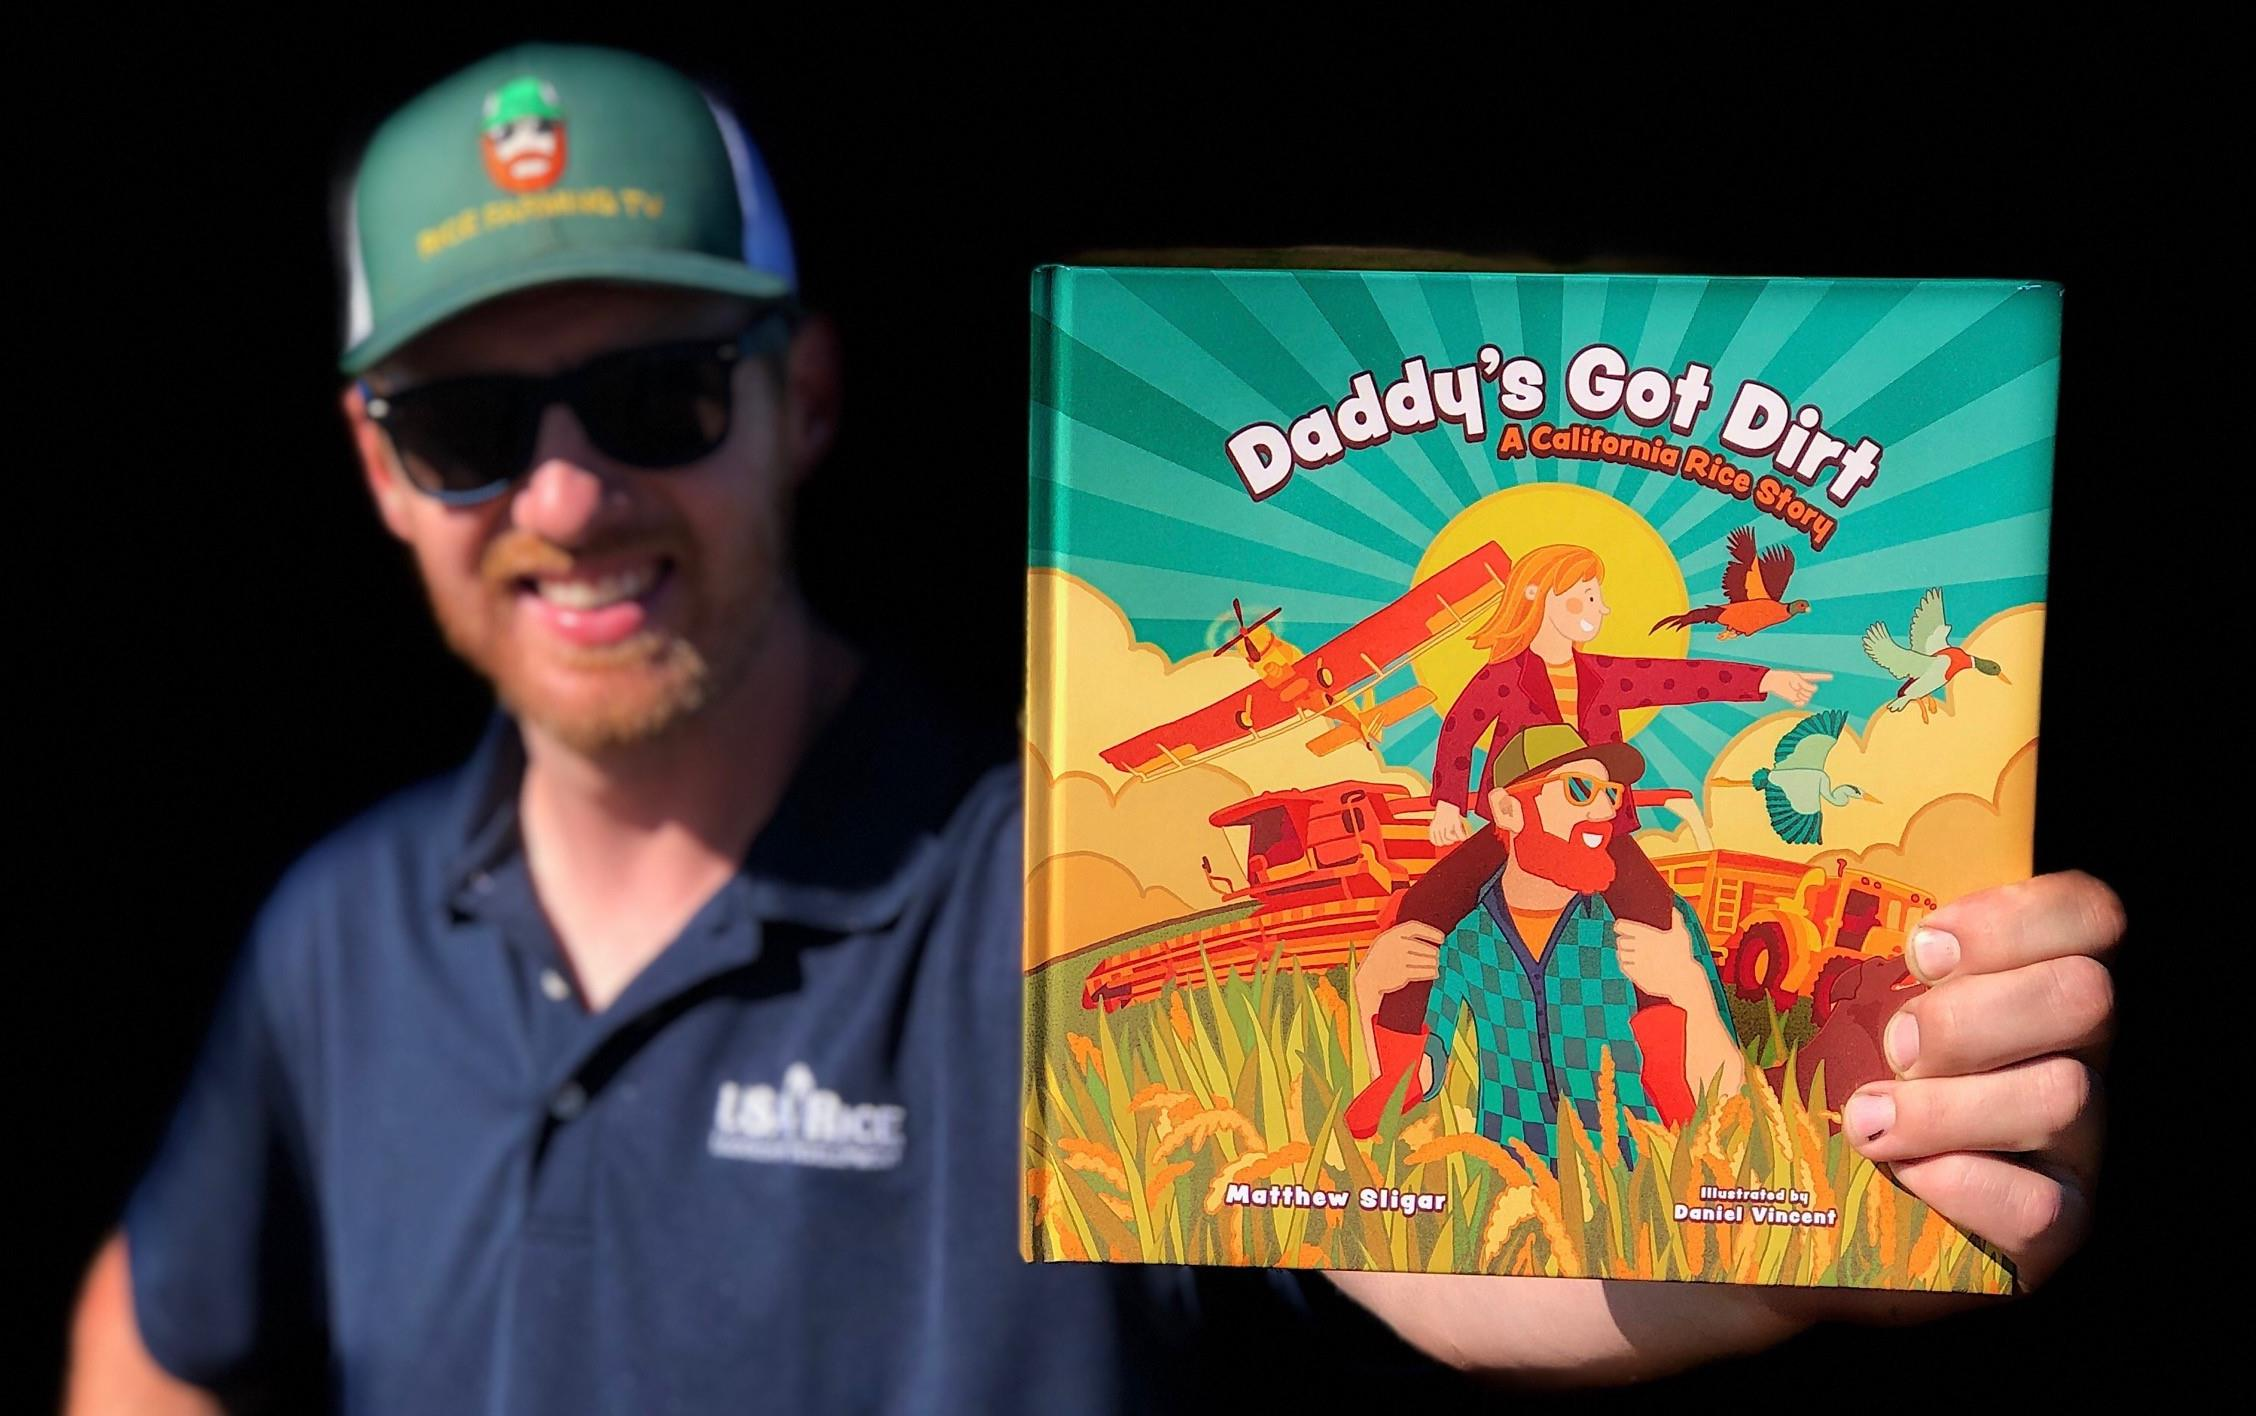 White man wearing ballcap holds childrens book, Daddy